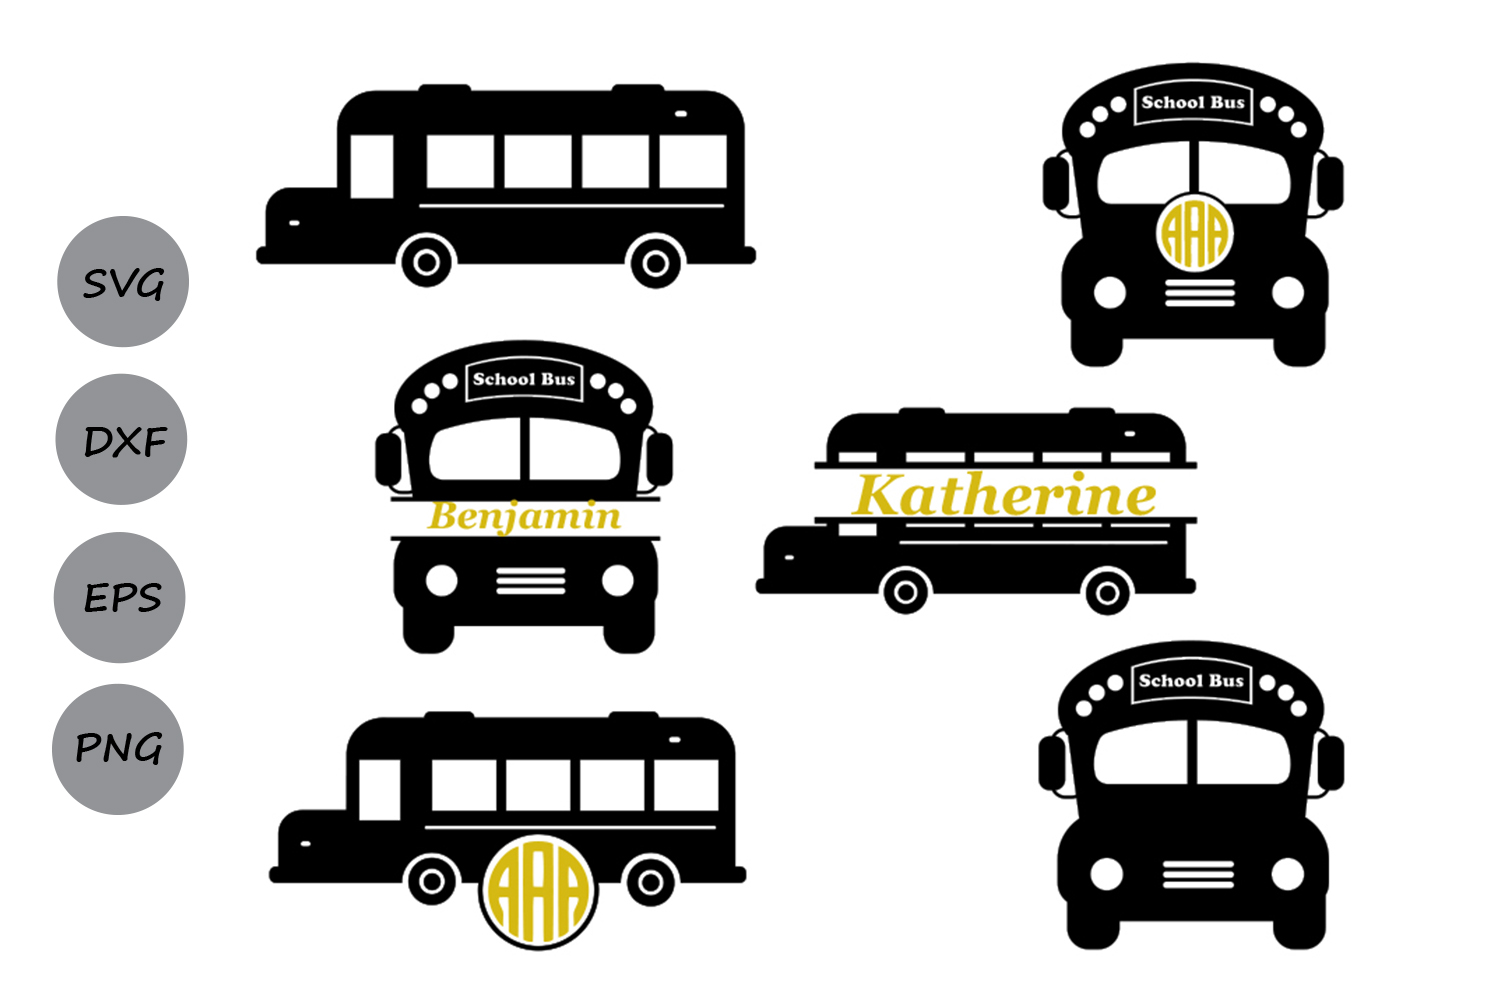 Download Free School Bus Monogram Svg Graphic By Cosmosfineart Creative Fabrica for Cricut Explore, Silhouette and other cutting machines.